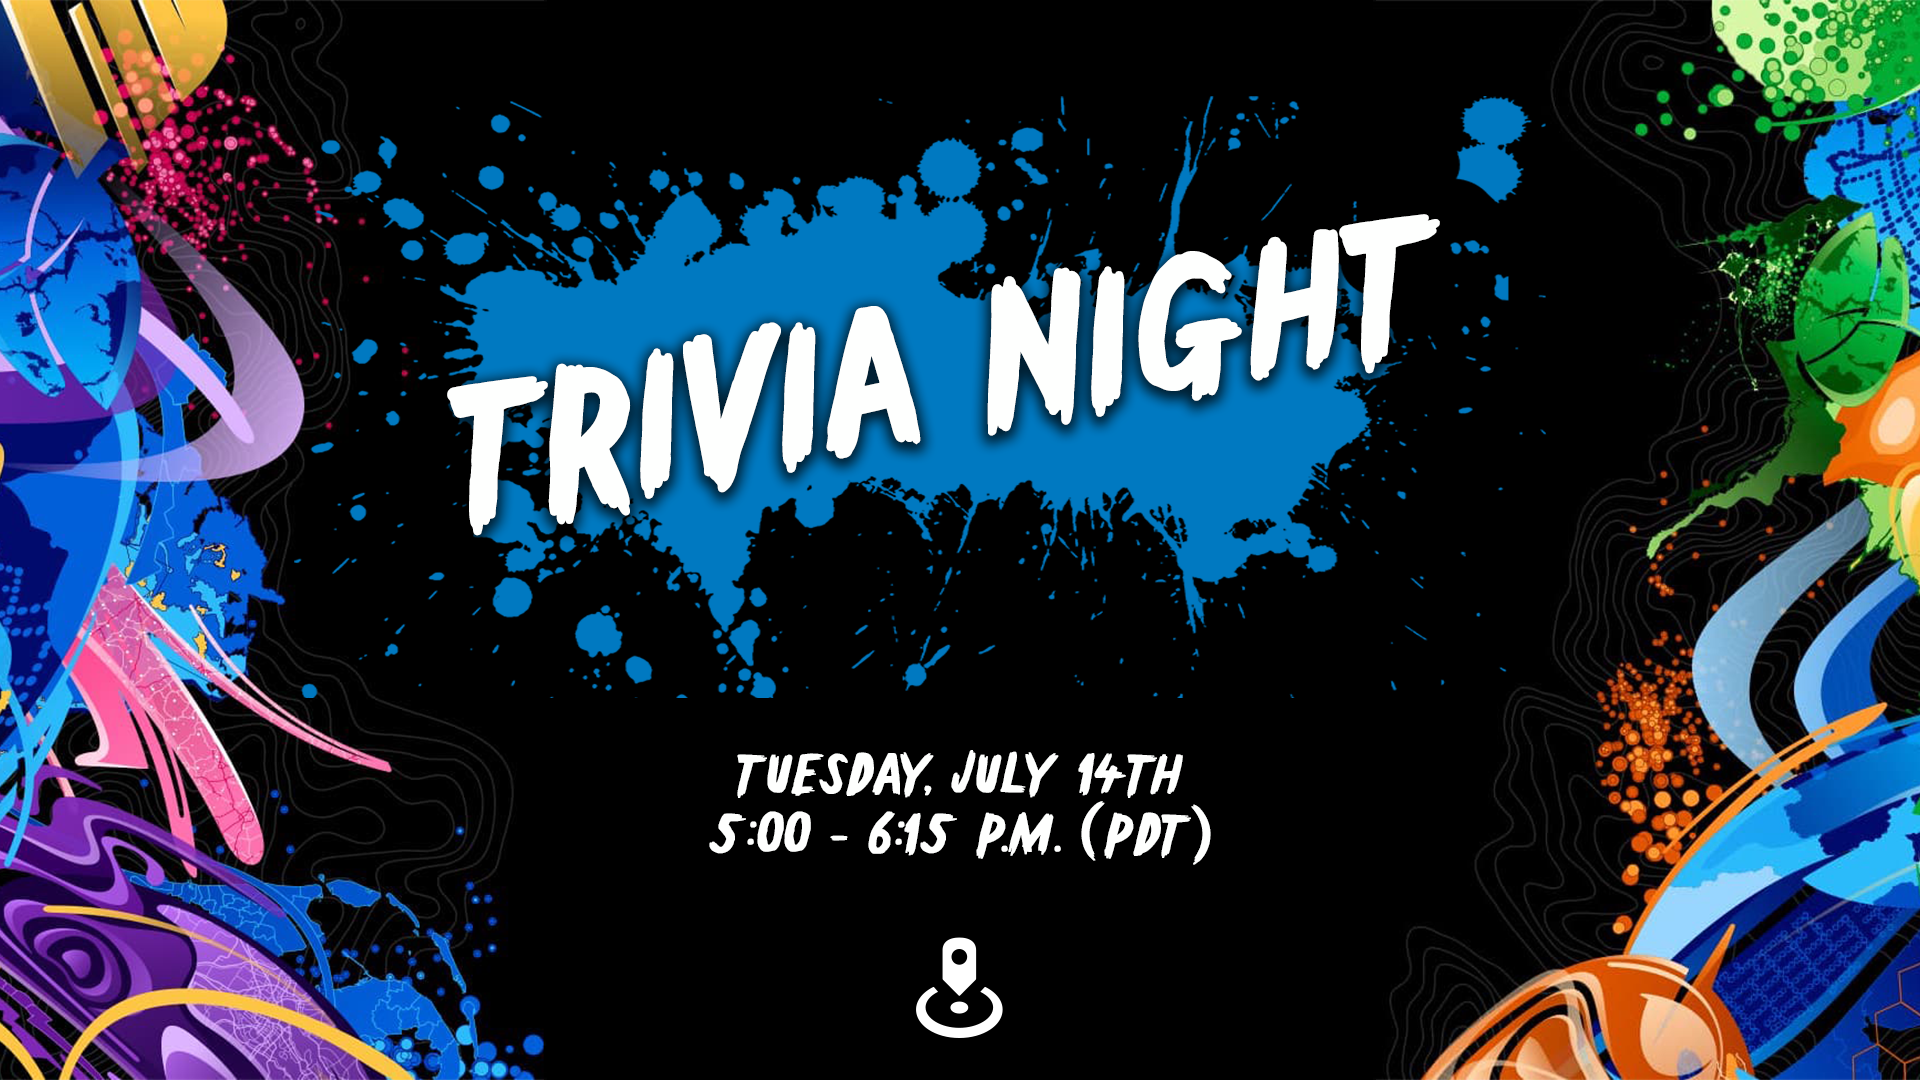 Trivia Night on Tuesday, July 14th from 5:00-6:00 PM (PDT). Text is over a blue paint splash with the ArcGIS Business Analyst logo at the base.